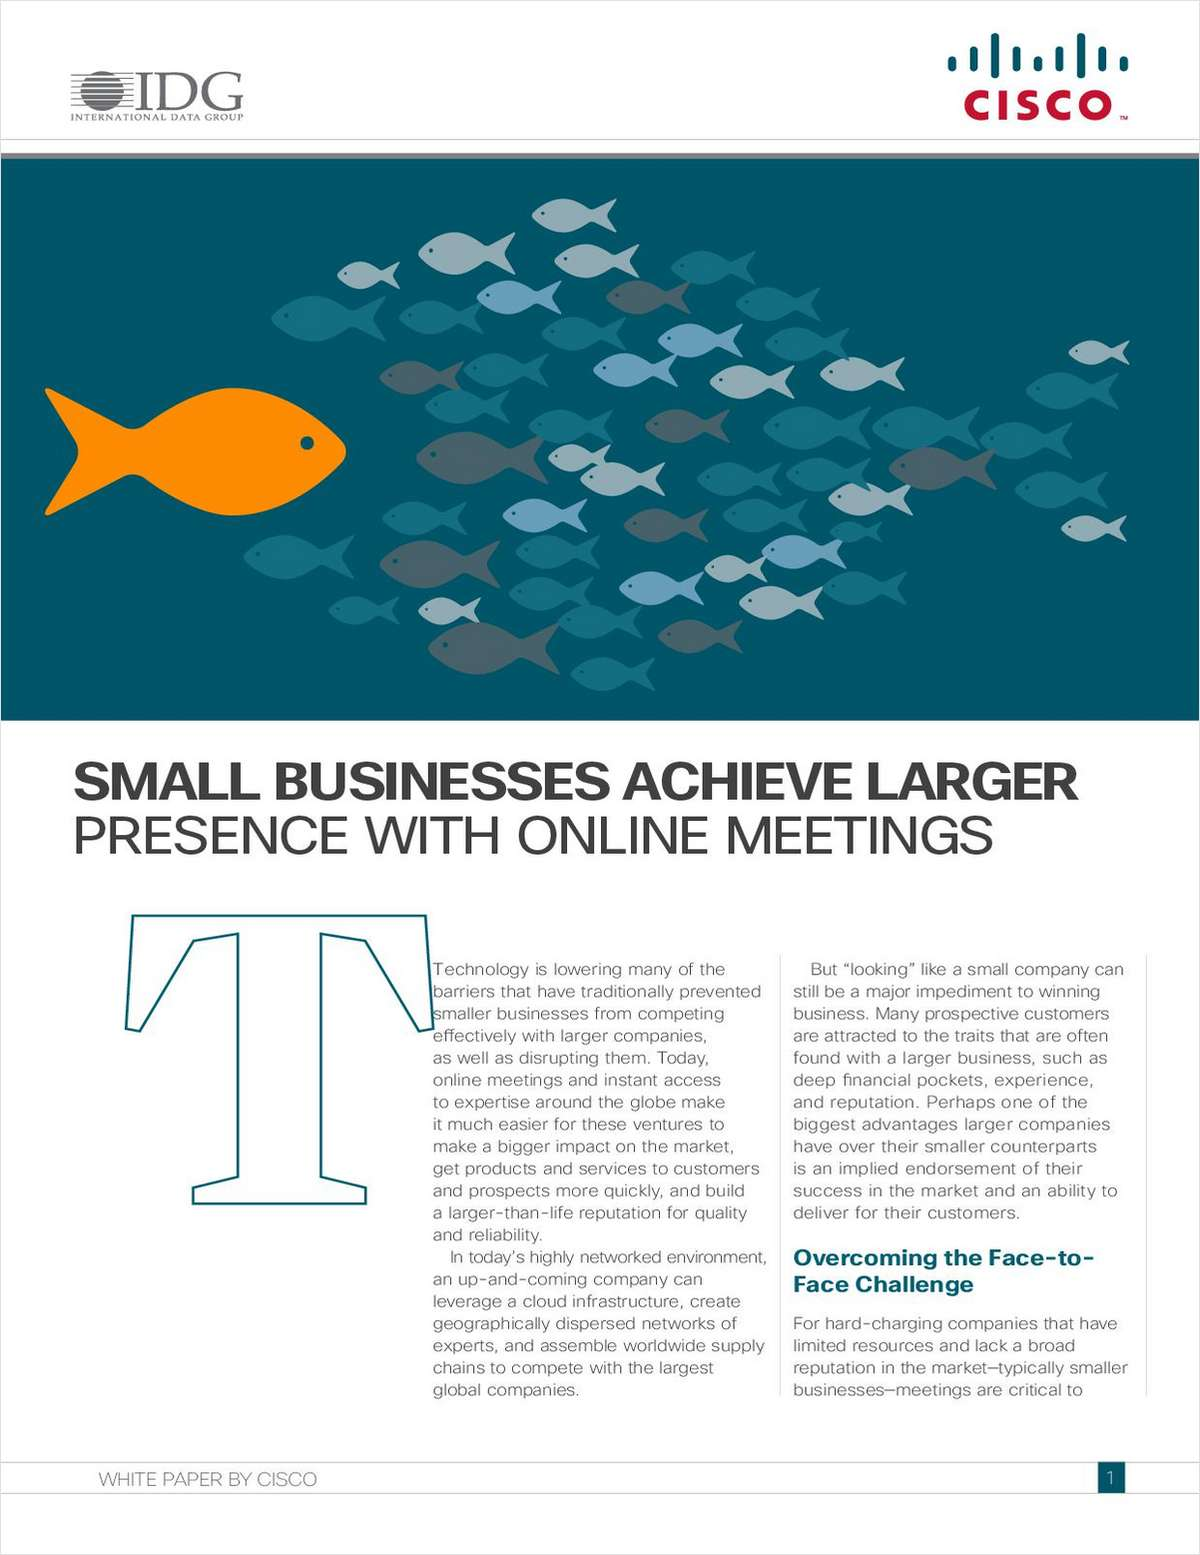 How Small Businesses Achieve Larger Presence with Online Meetings